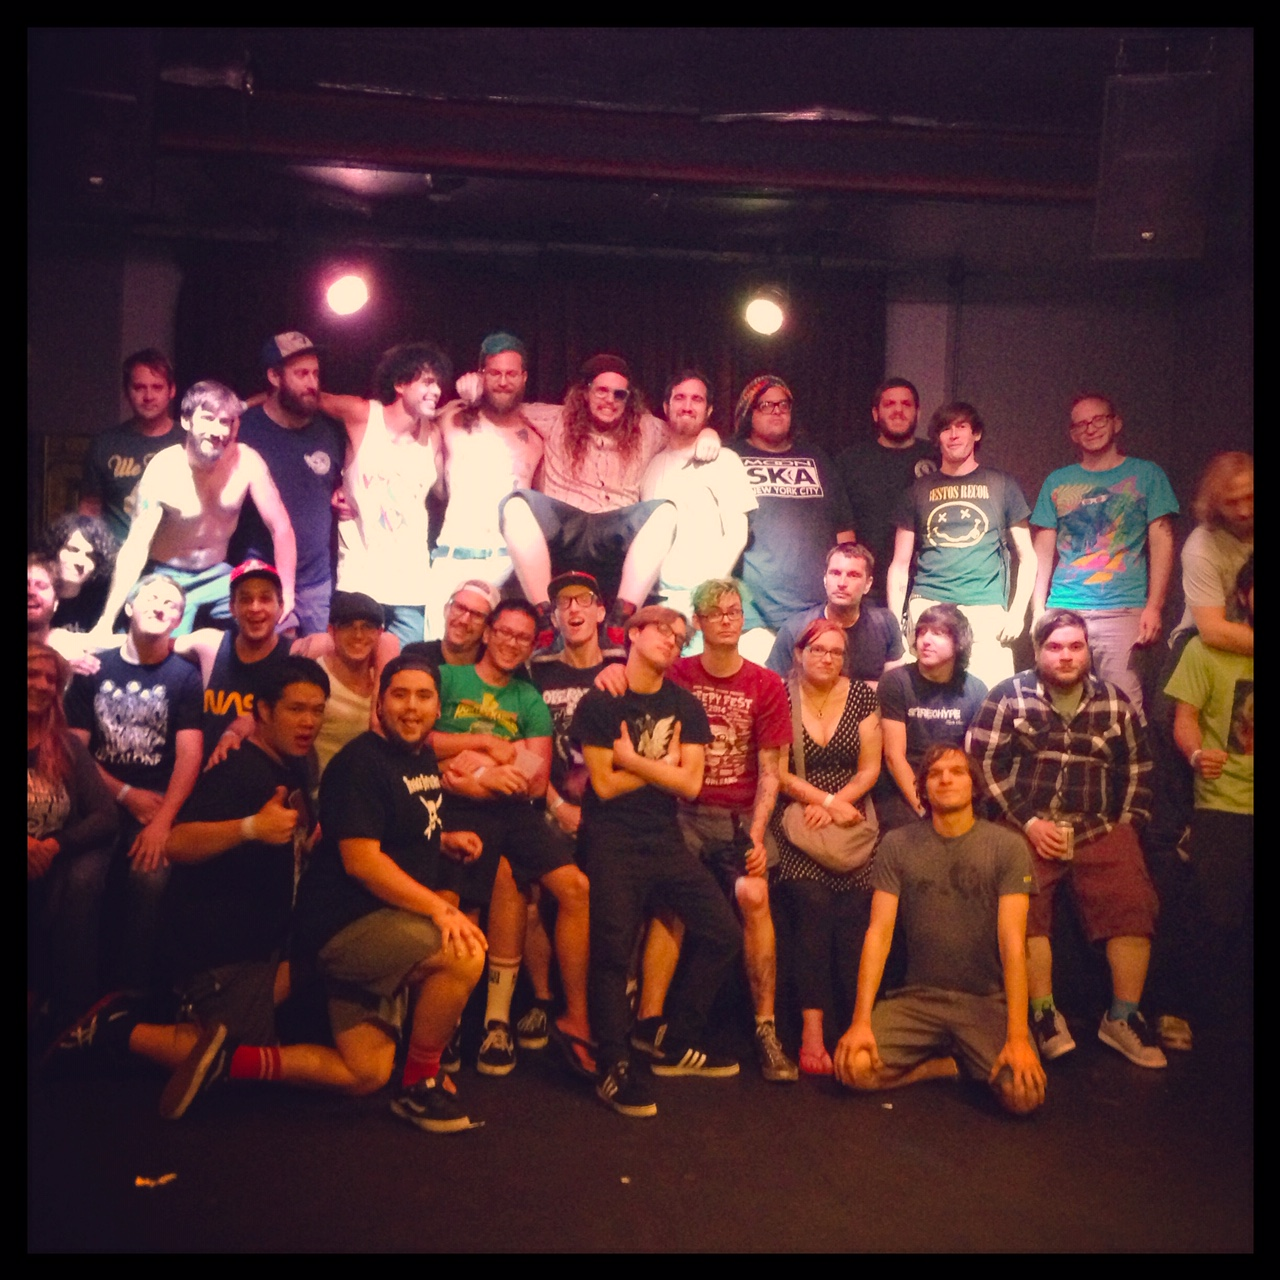 All 5 bands and crew after the Denver show of the tour